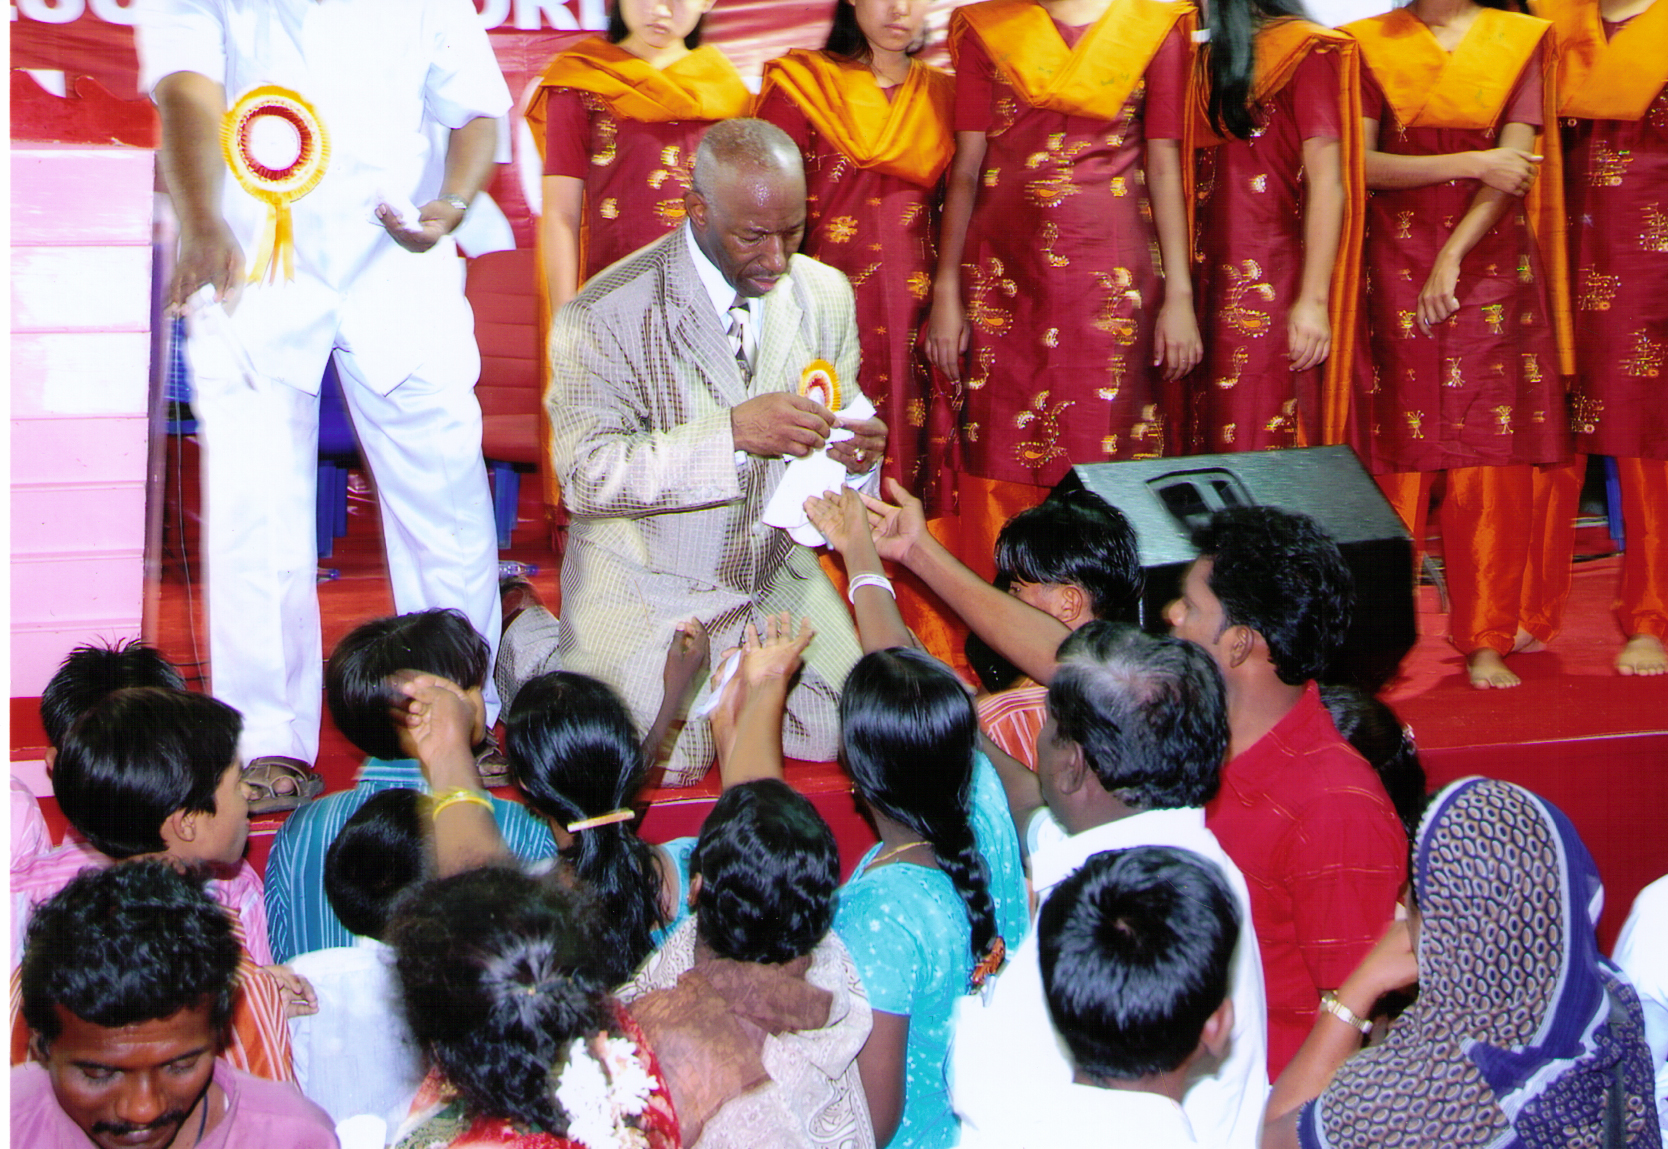 Apostle McFarlane Distributing Anointed Oil & Prayer Cloths at the Revival in India 2008